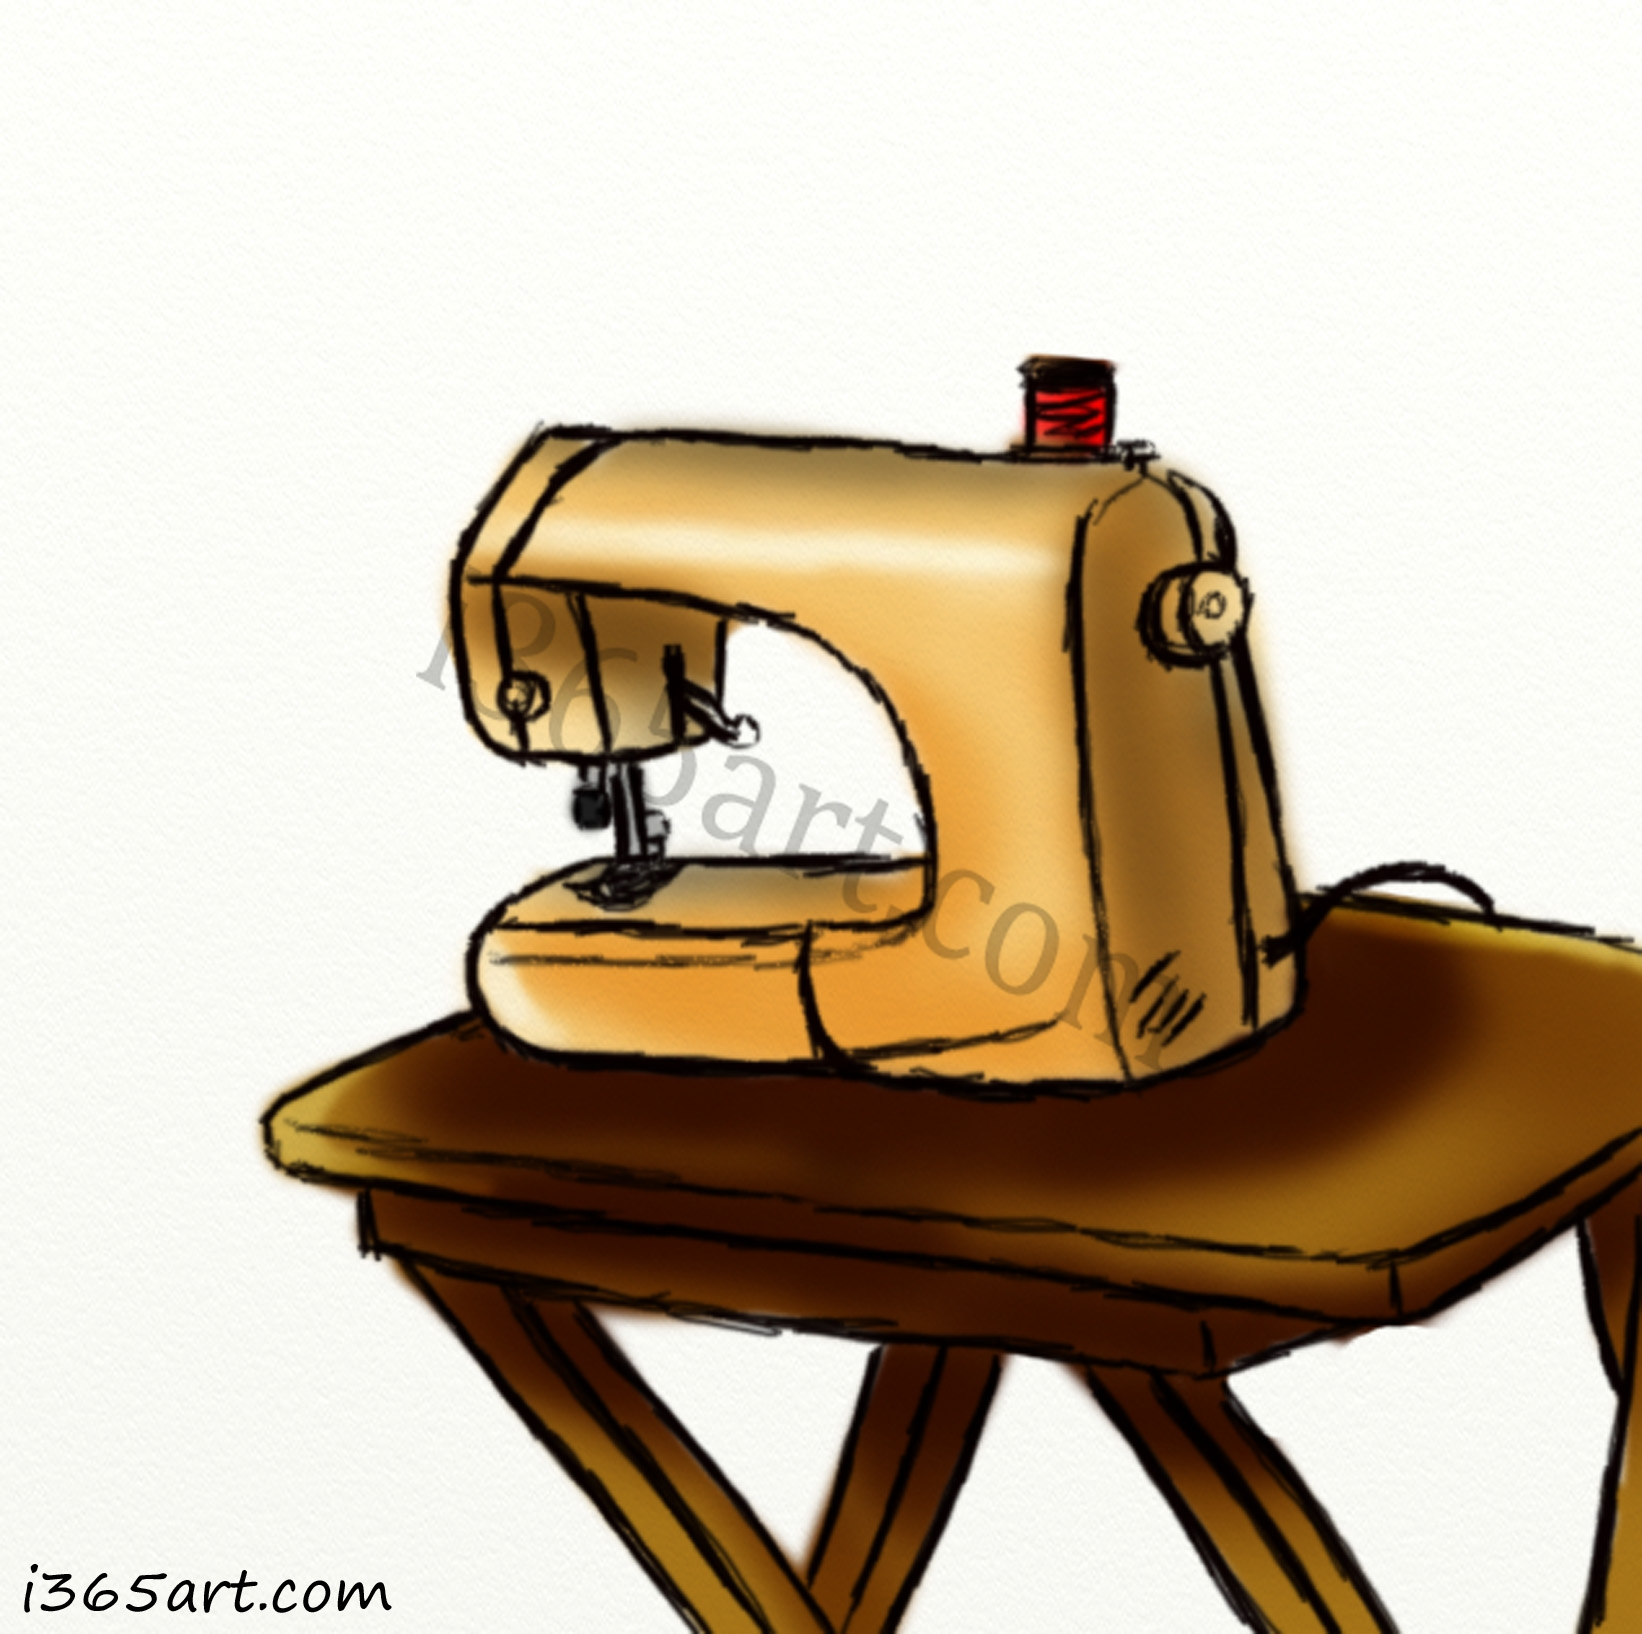 jul 16 Day #160 Sewing Machine Sketch